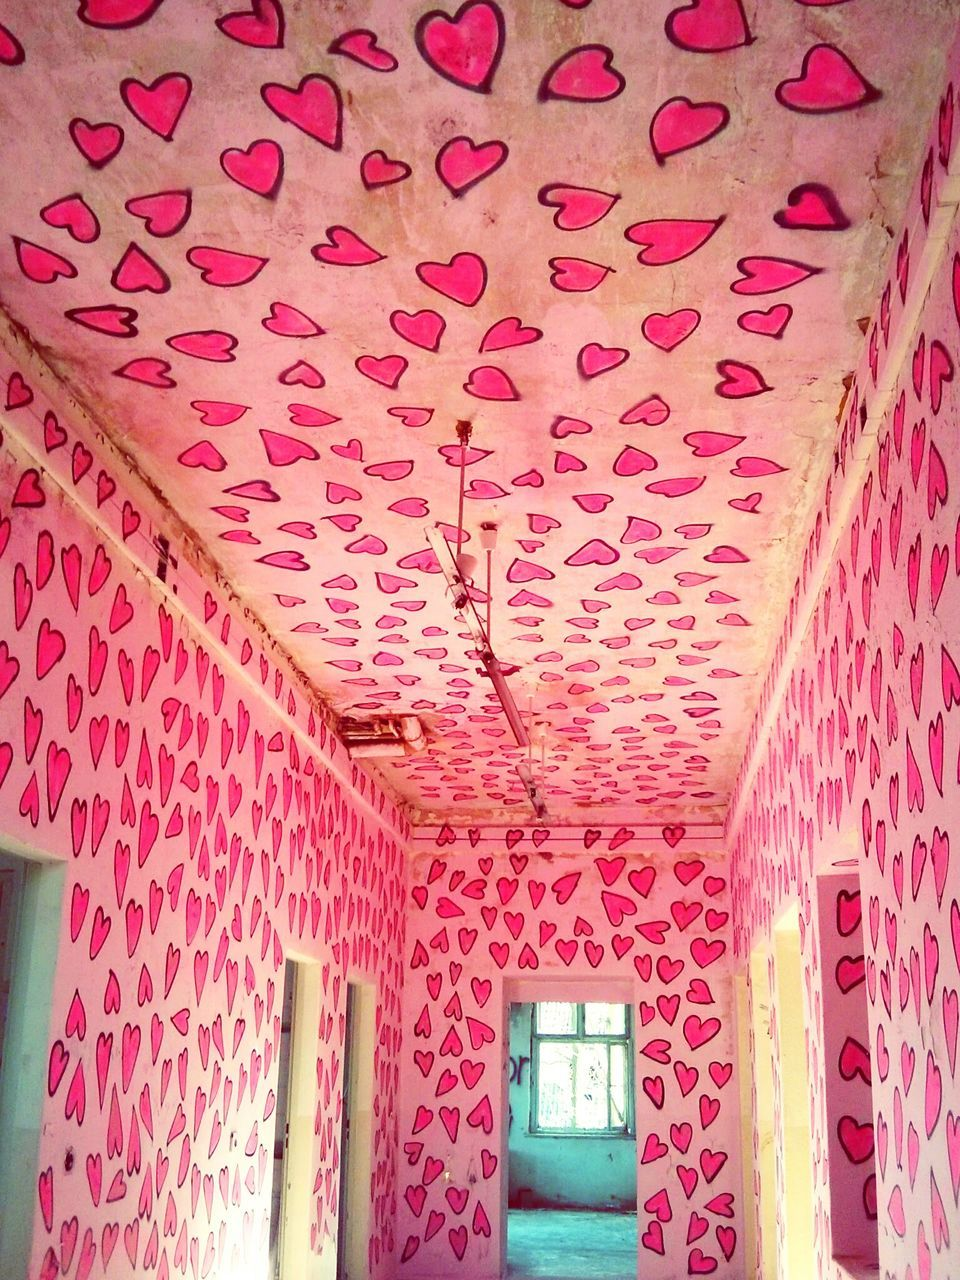 Corridor With Hearts On Walls And Ceiling